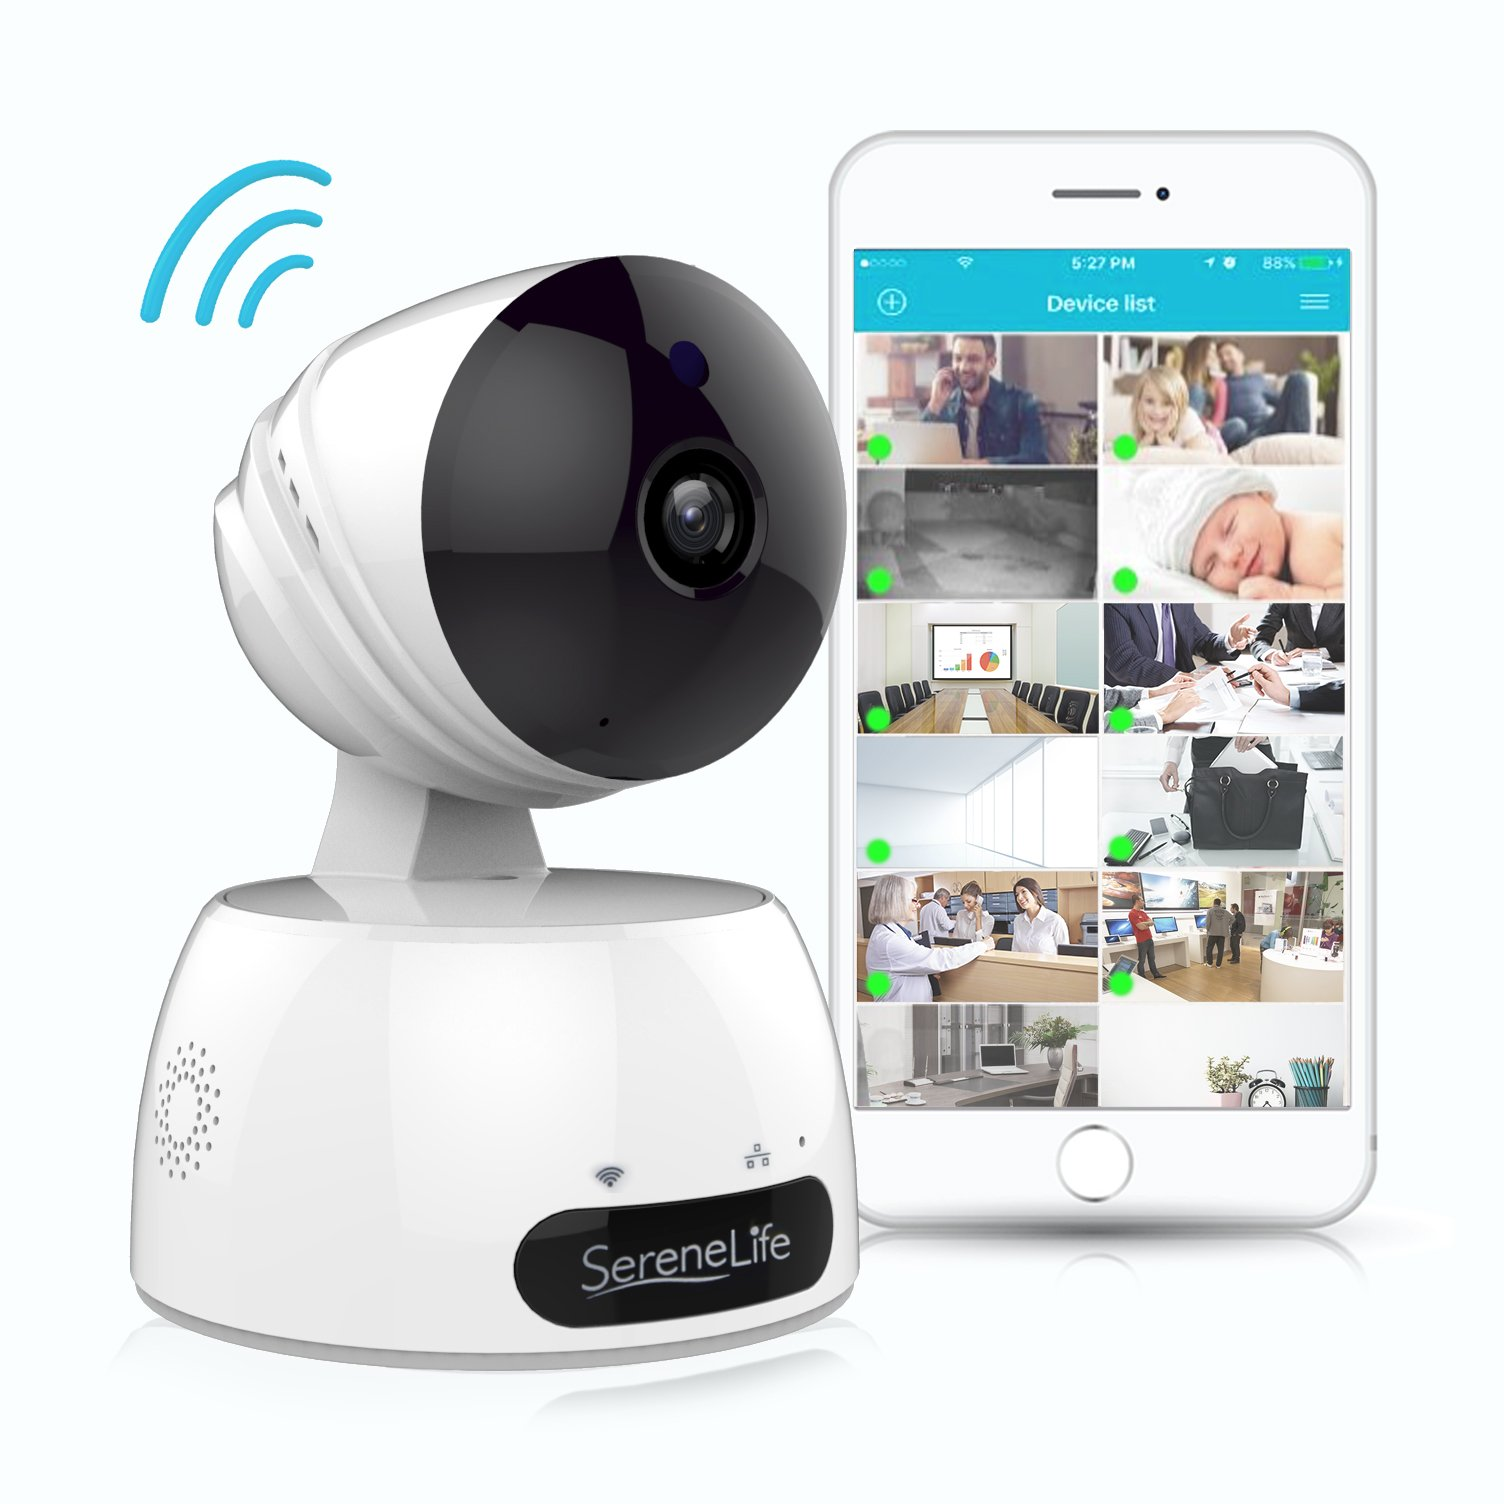 SereneLife Indoor Wireless IP Camera - HD 720p Network Security Surveillance Home Monitoring w/Motion Detection, Night Vision, PTZ, 2 Way Audio, iPhone Android Mobile App - PC WiFi Access - IPCAMHD30 by SereneLife